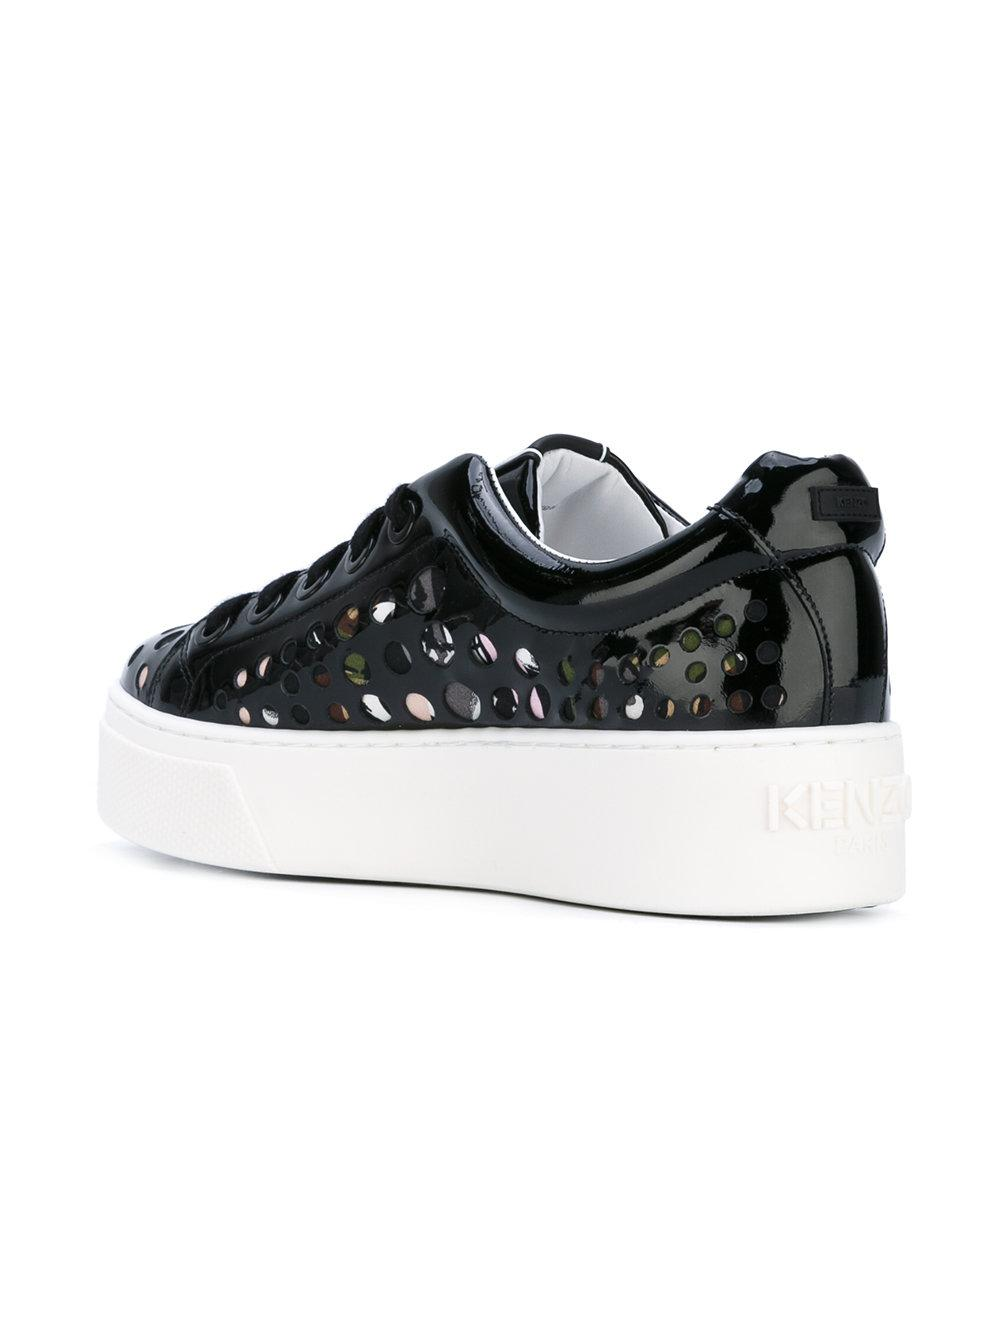 KENZO Leather Punch-hole Sneakers in Black